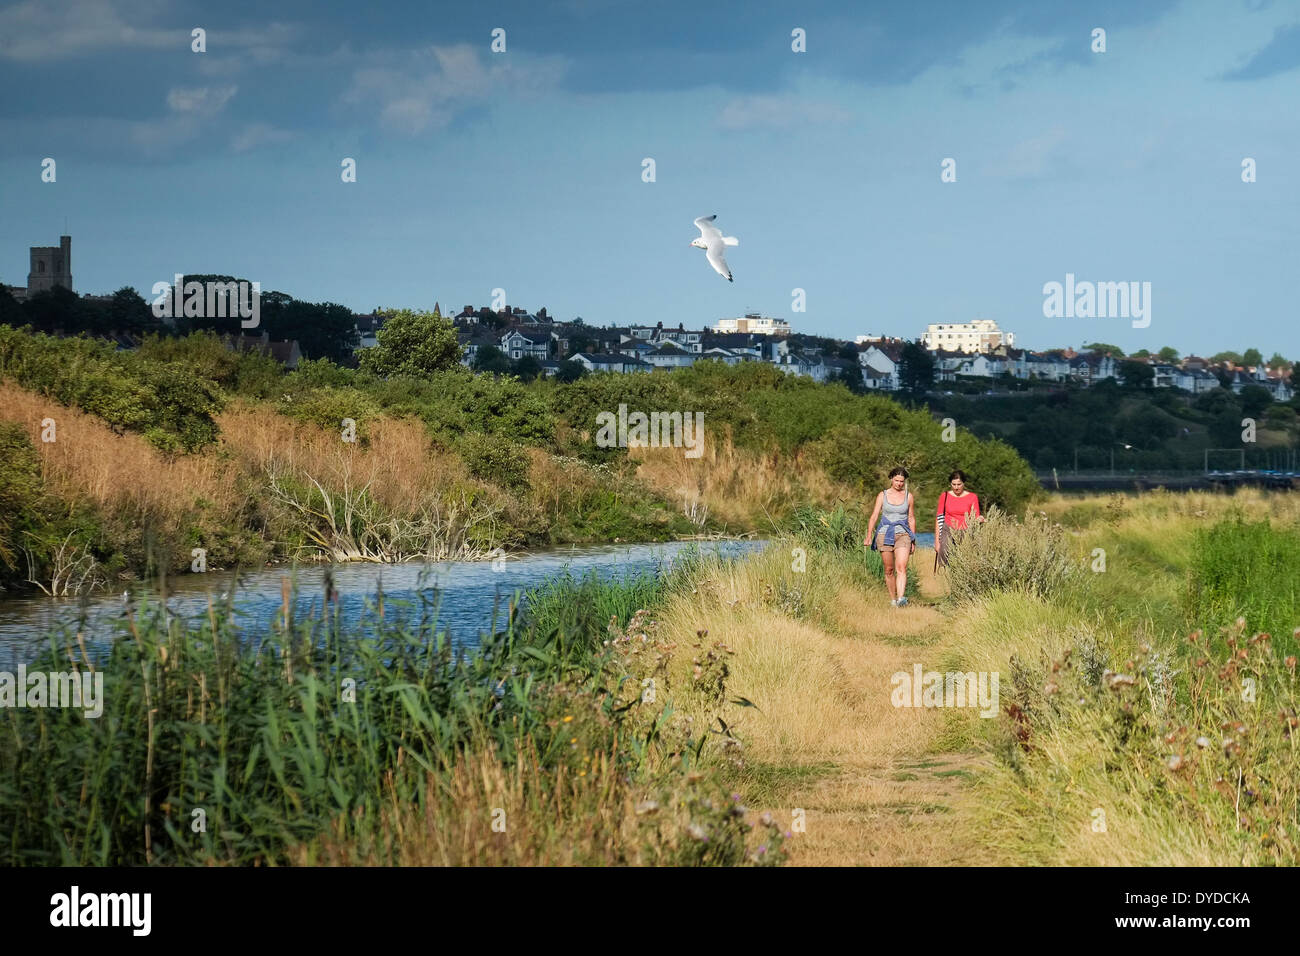 Two women walking in Two Tree Island nature reserve. - Stock Image